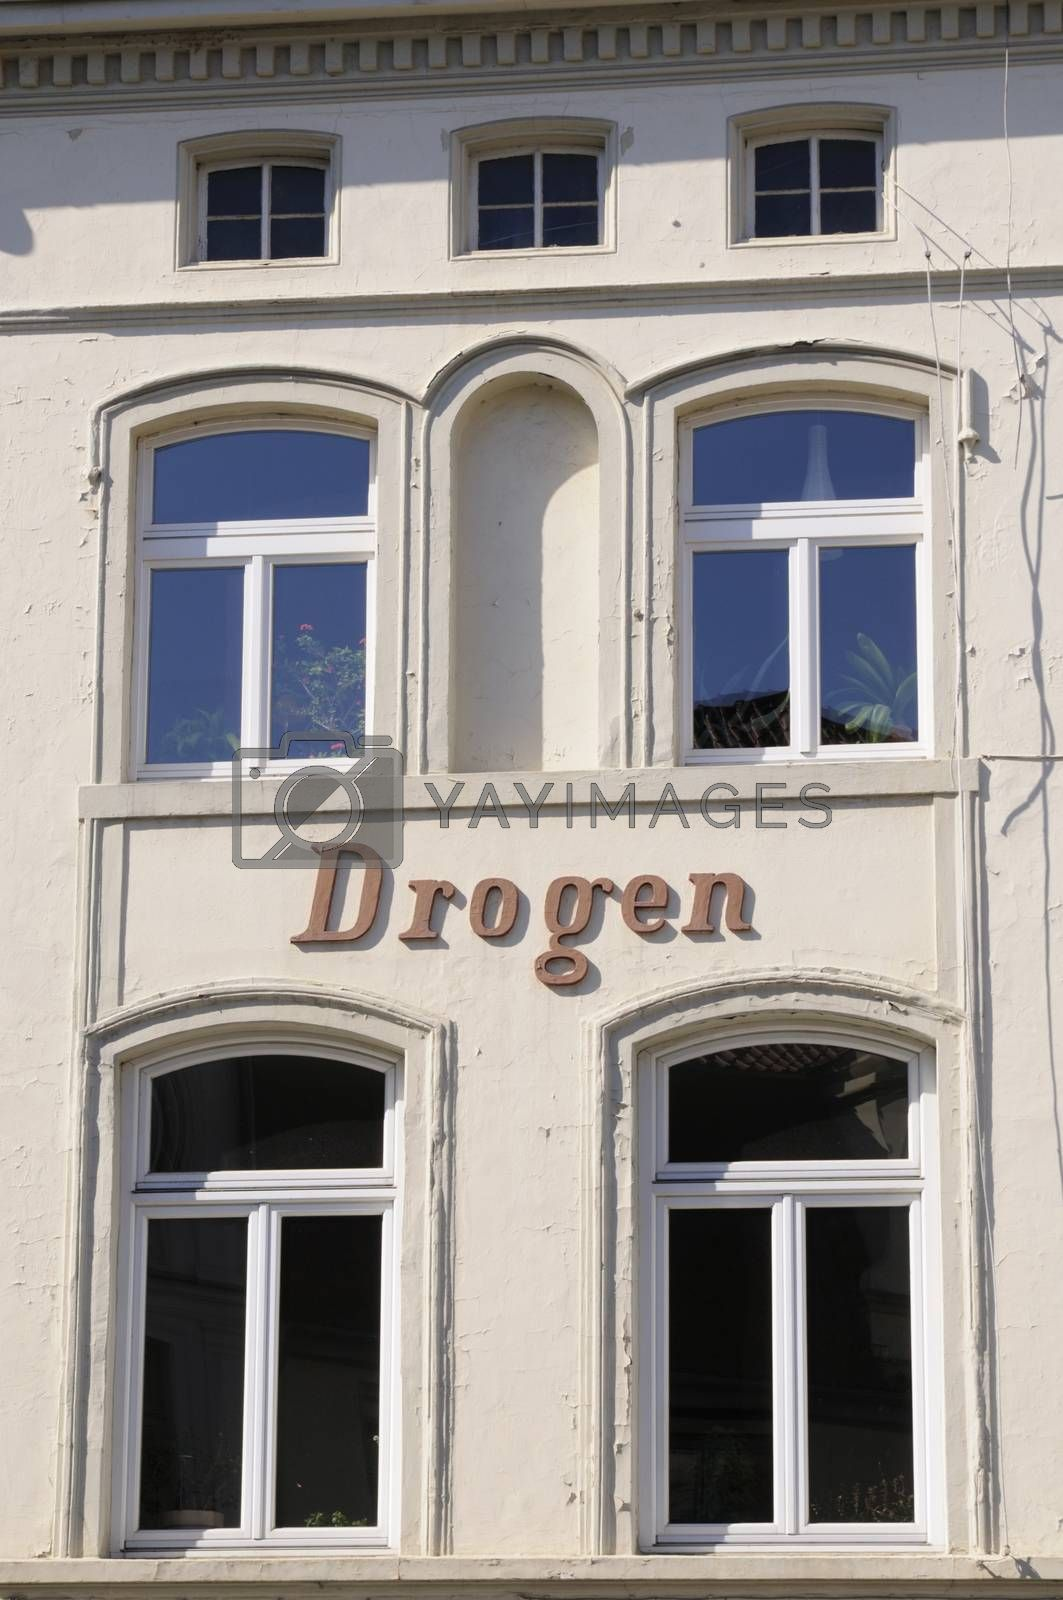 Exterior lettering on building in Wismar, Germany.